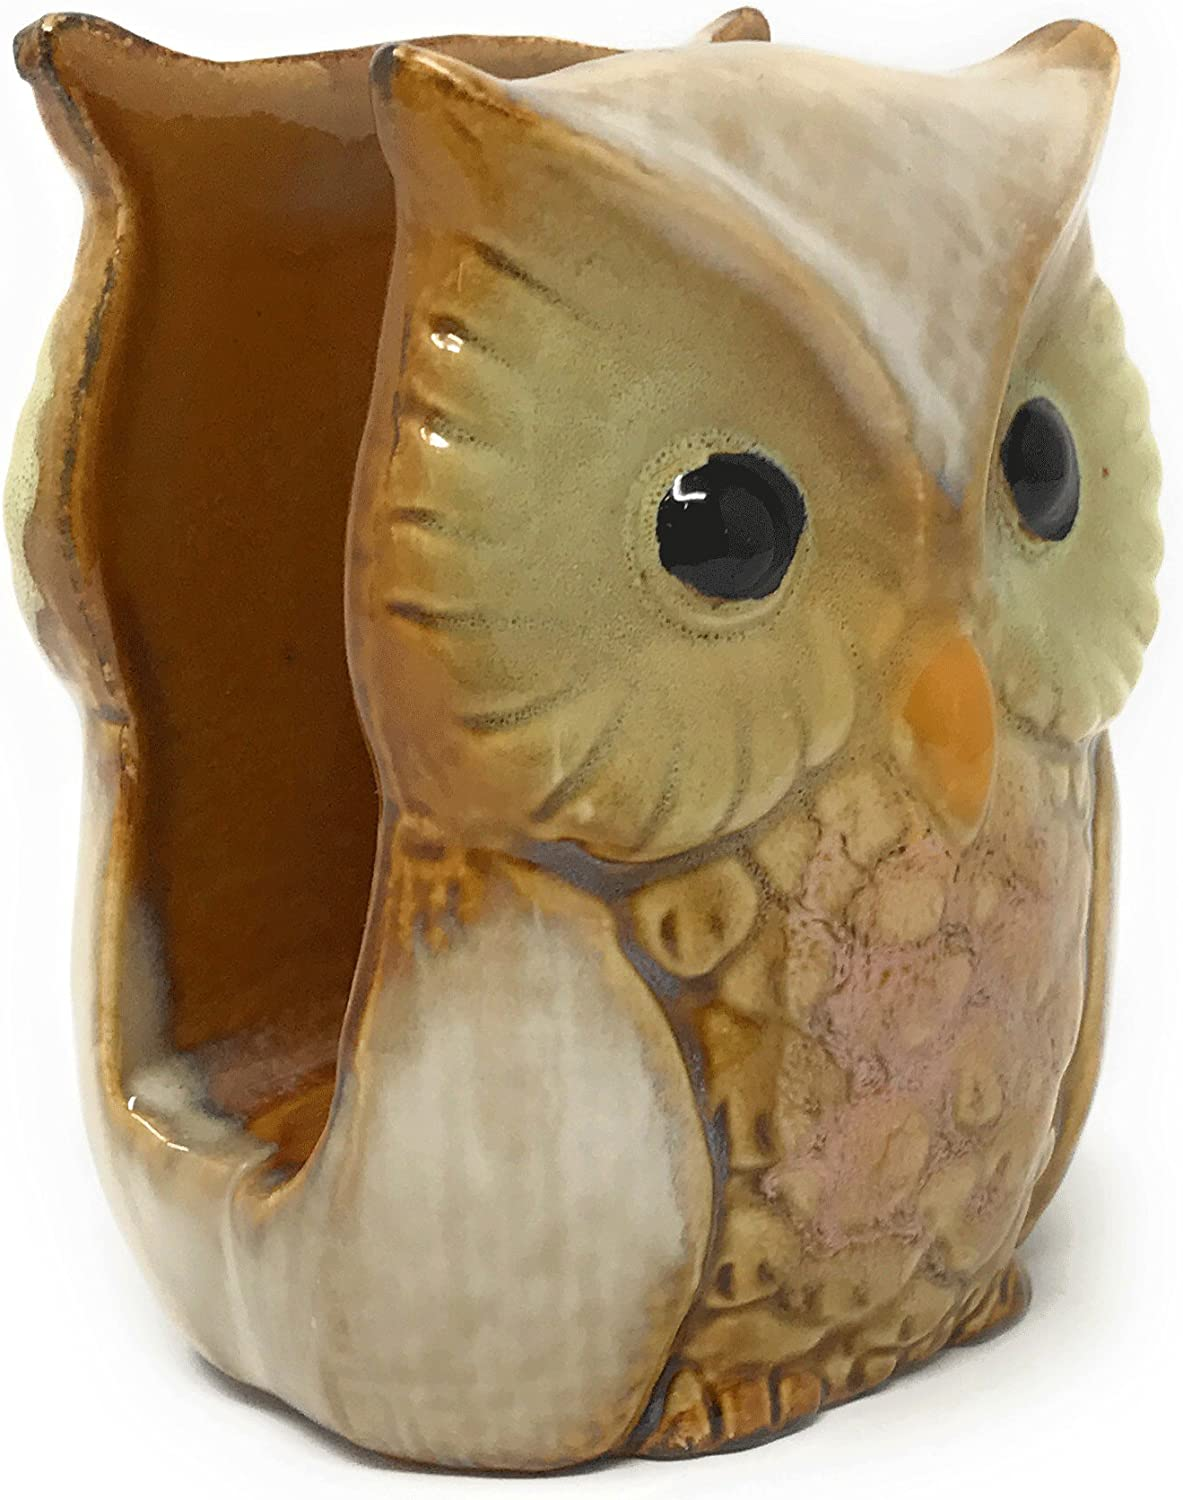 New products world's highest quality popular Nature's Home NEW before selling Ceramic Owl Beige Napkin Holder